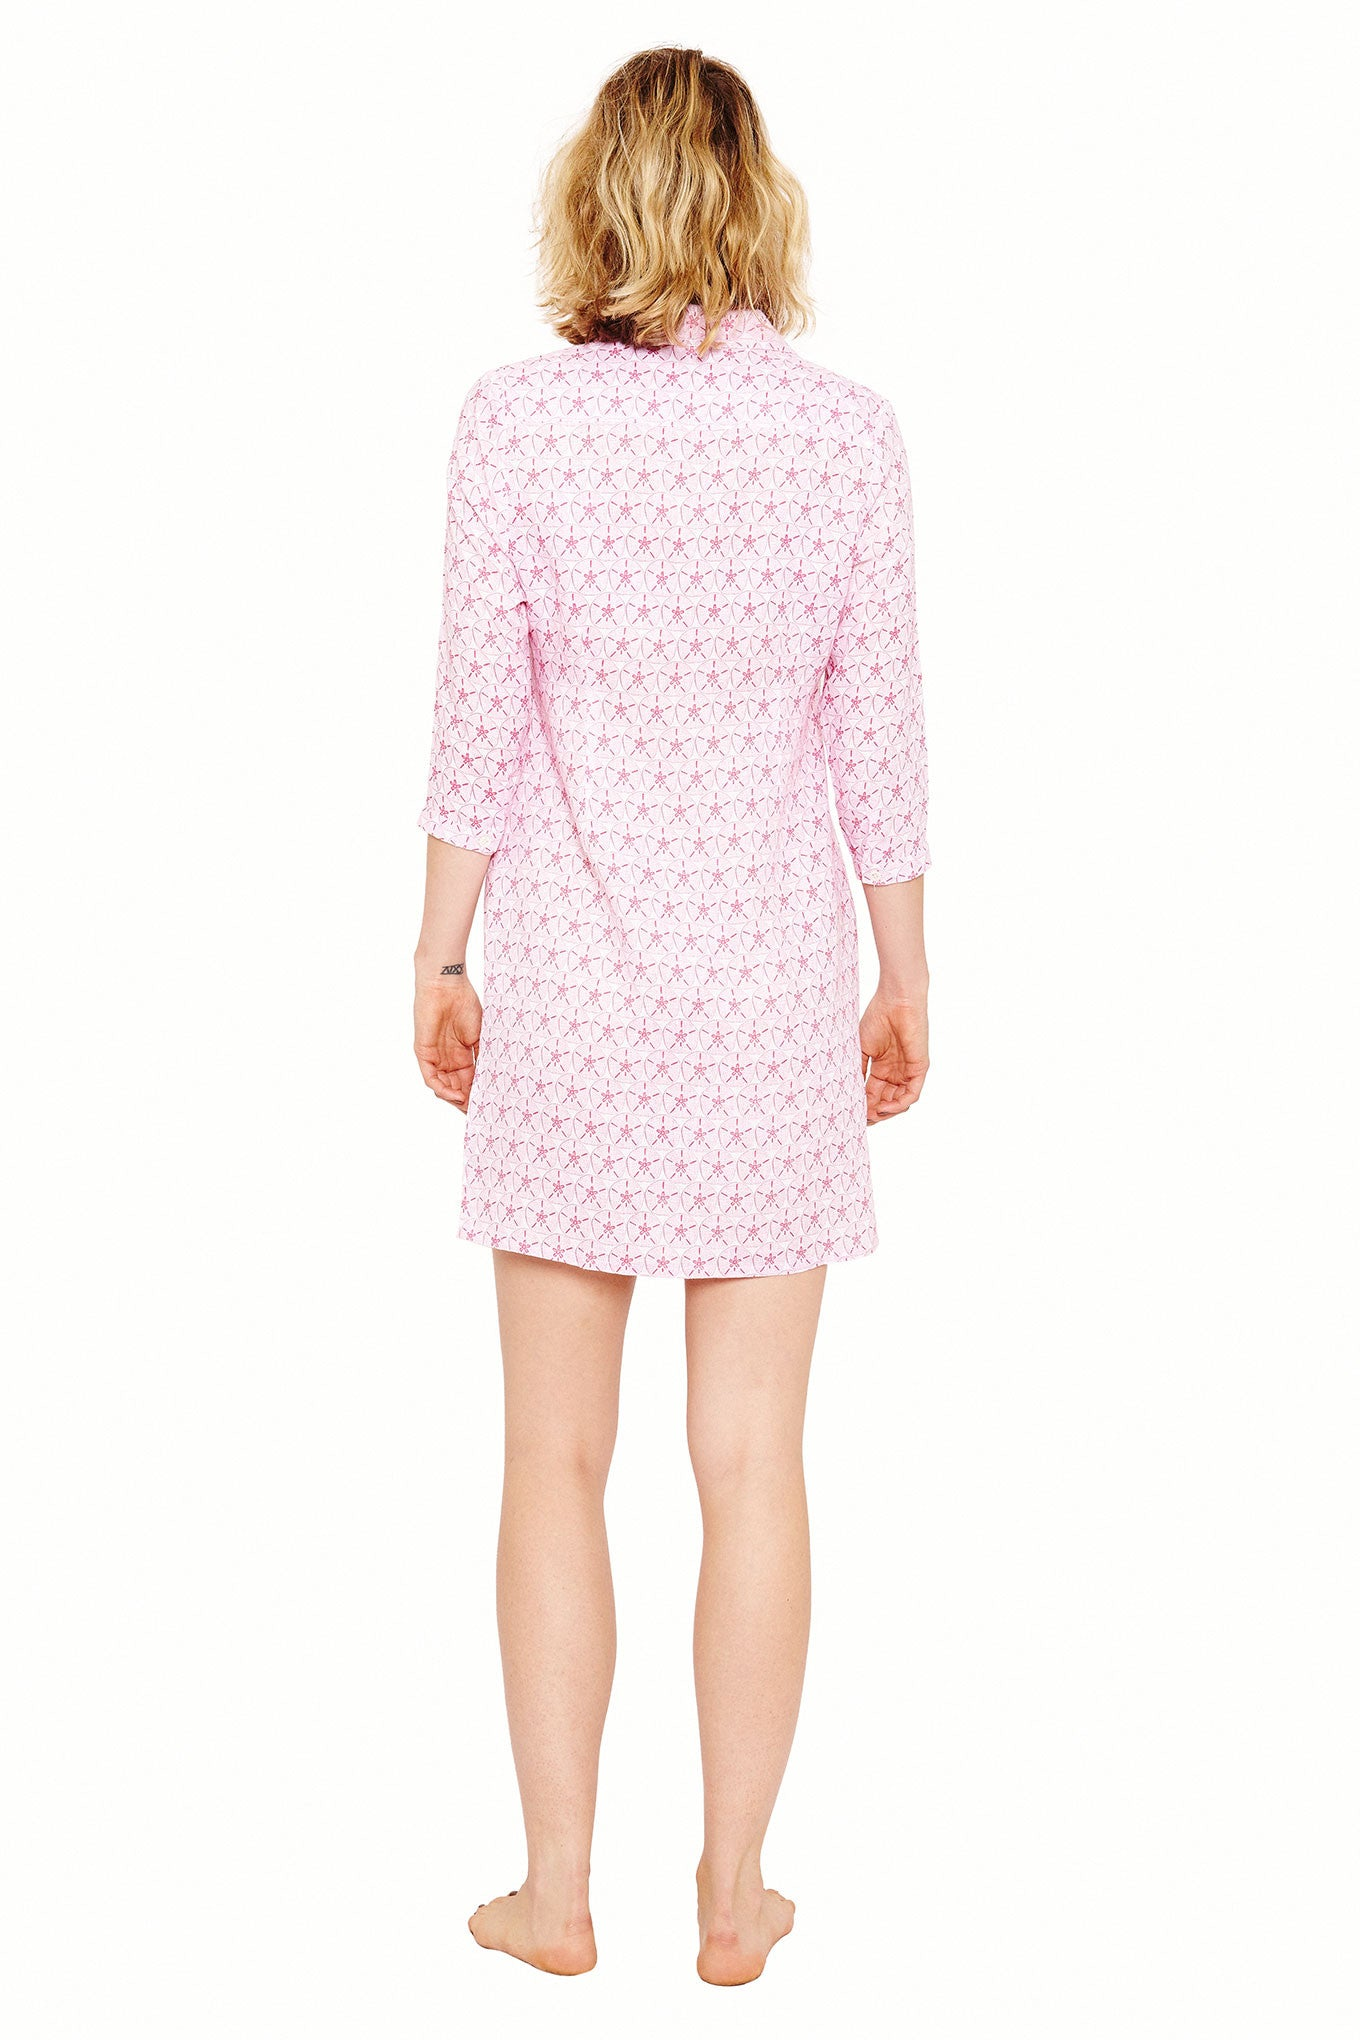 Womens Shirt Dress (Sand Dollar Pink) Back